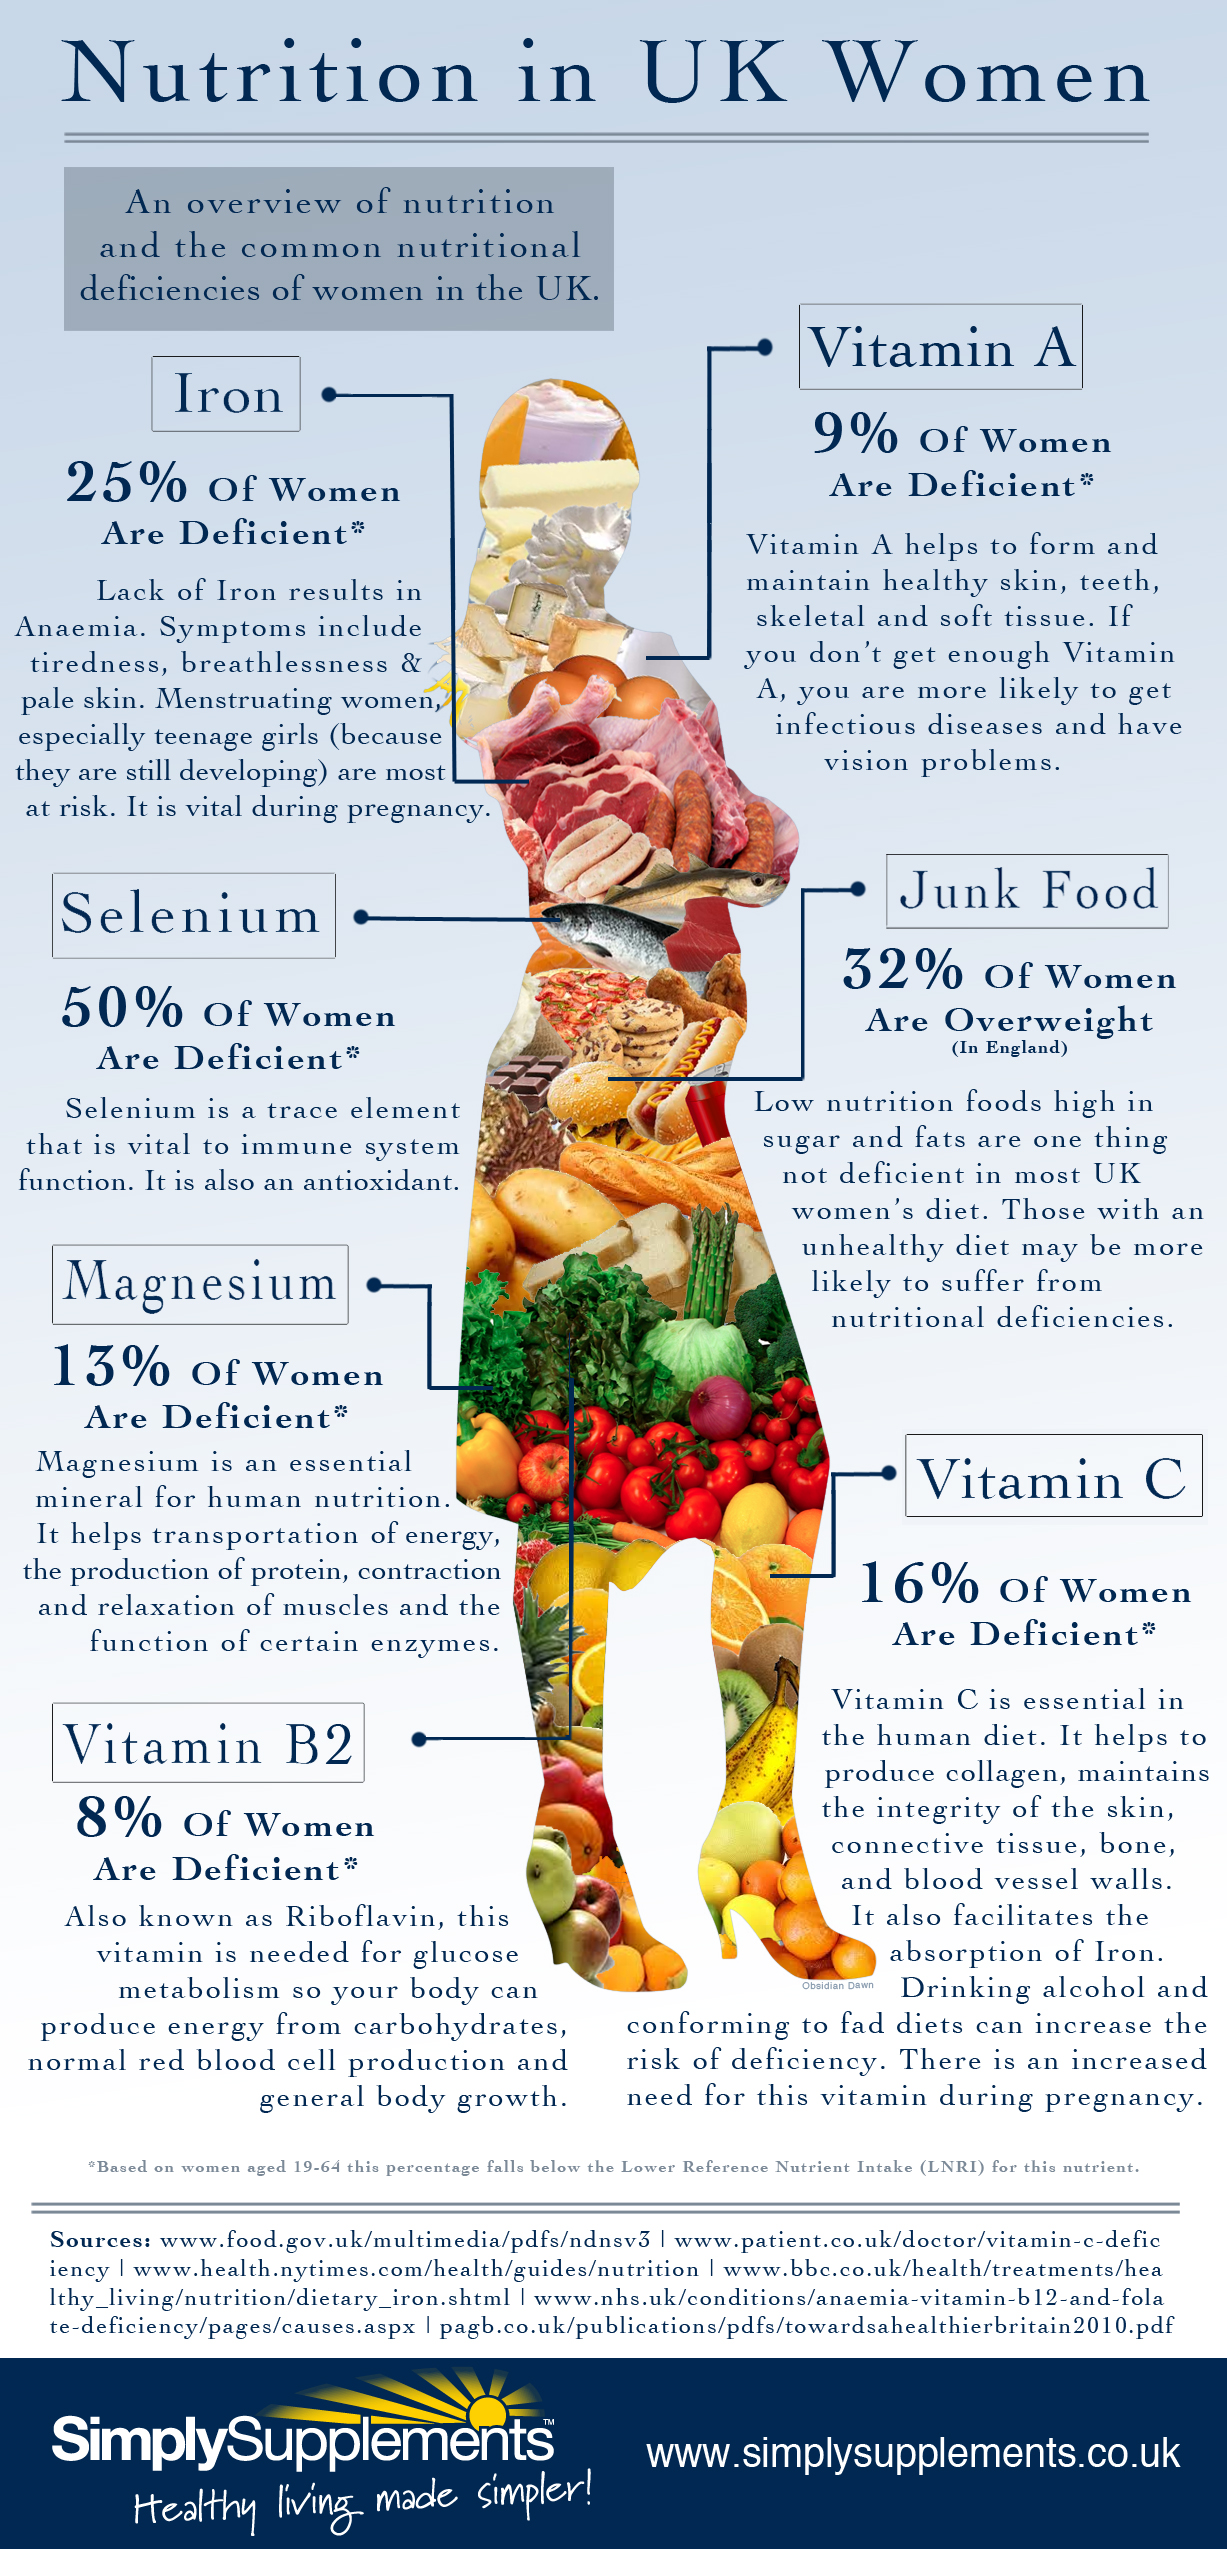 nutrition-in-uk-women_512f7fceaea12.jpg